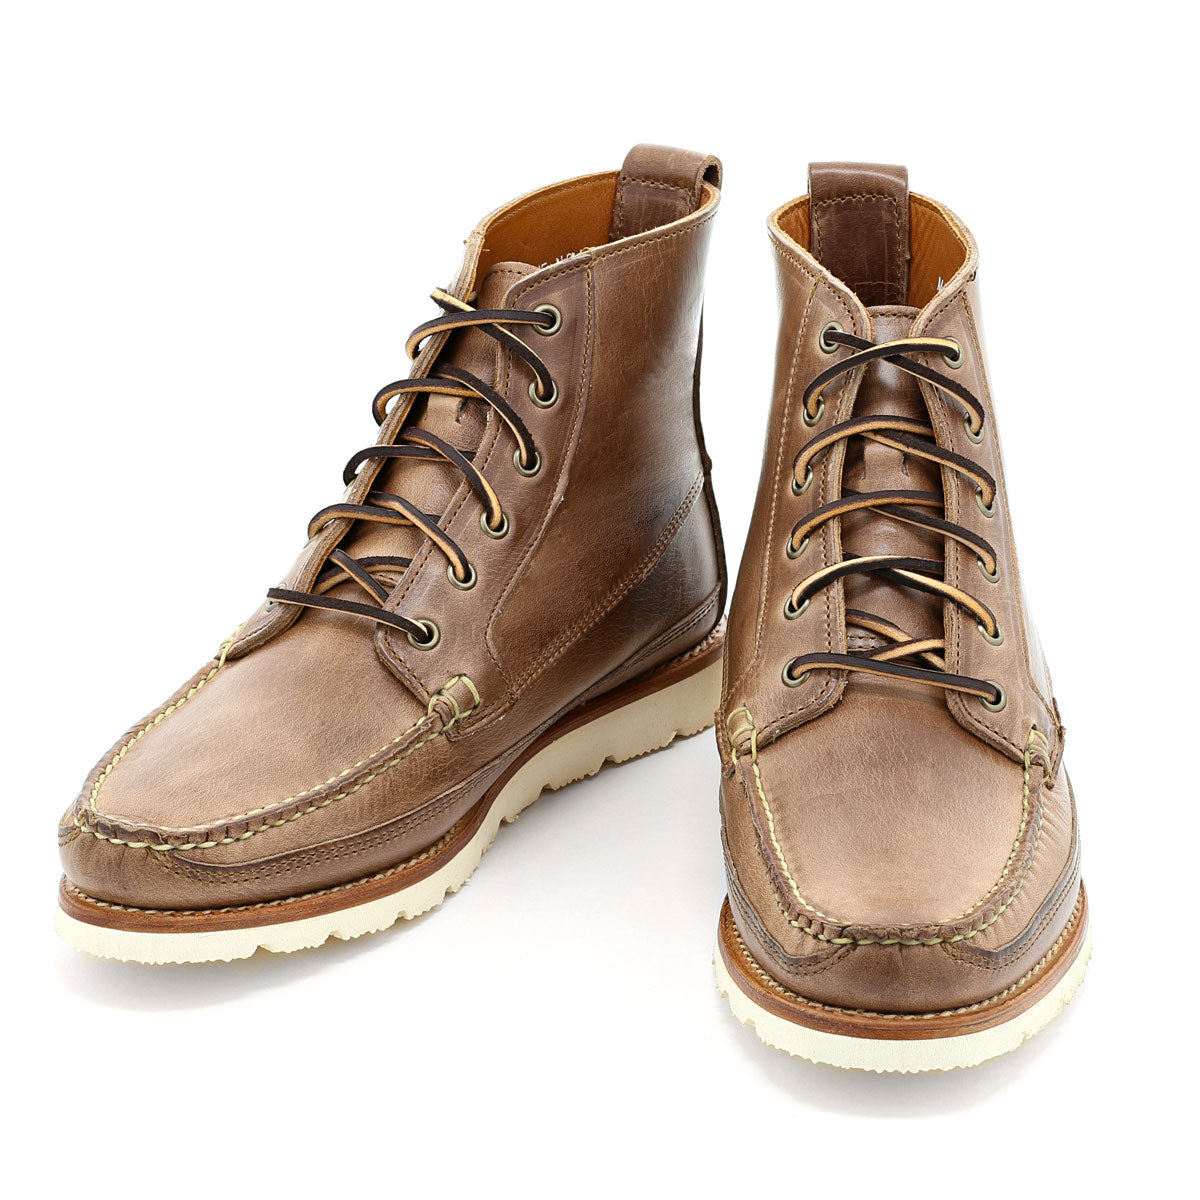 Harrison Boot Redux - Natural Chromexcel